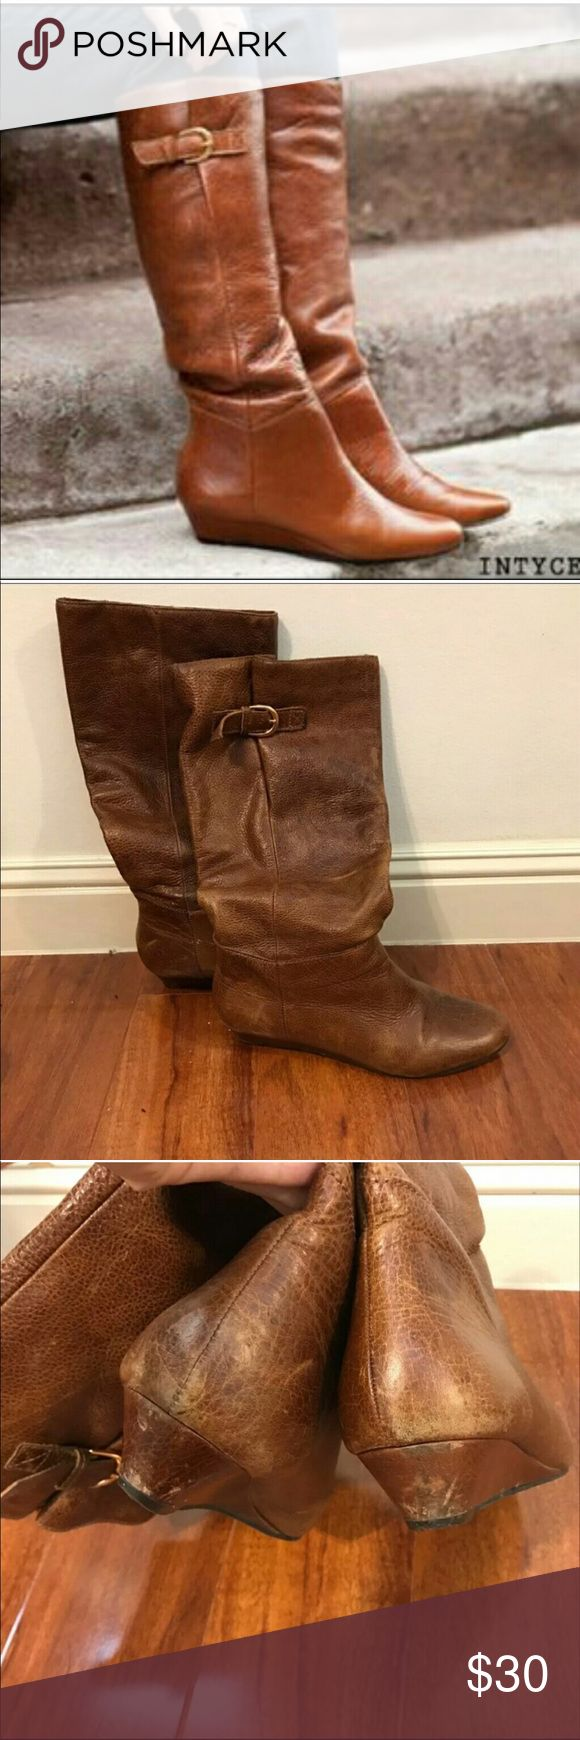 Steve Madden Intyce cognac leather boots Used Steve Madden boots, great condition. Size 8.5 slight lift in heel, not enough to call it a heeled boot, maybe a small wedge. Comfy.. able to tighten or loosen top of calf as well. Steve Madden Shoes Heeled Boots